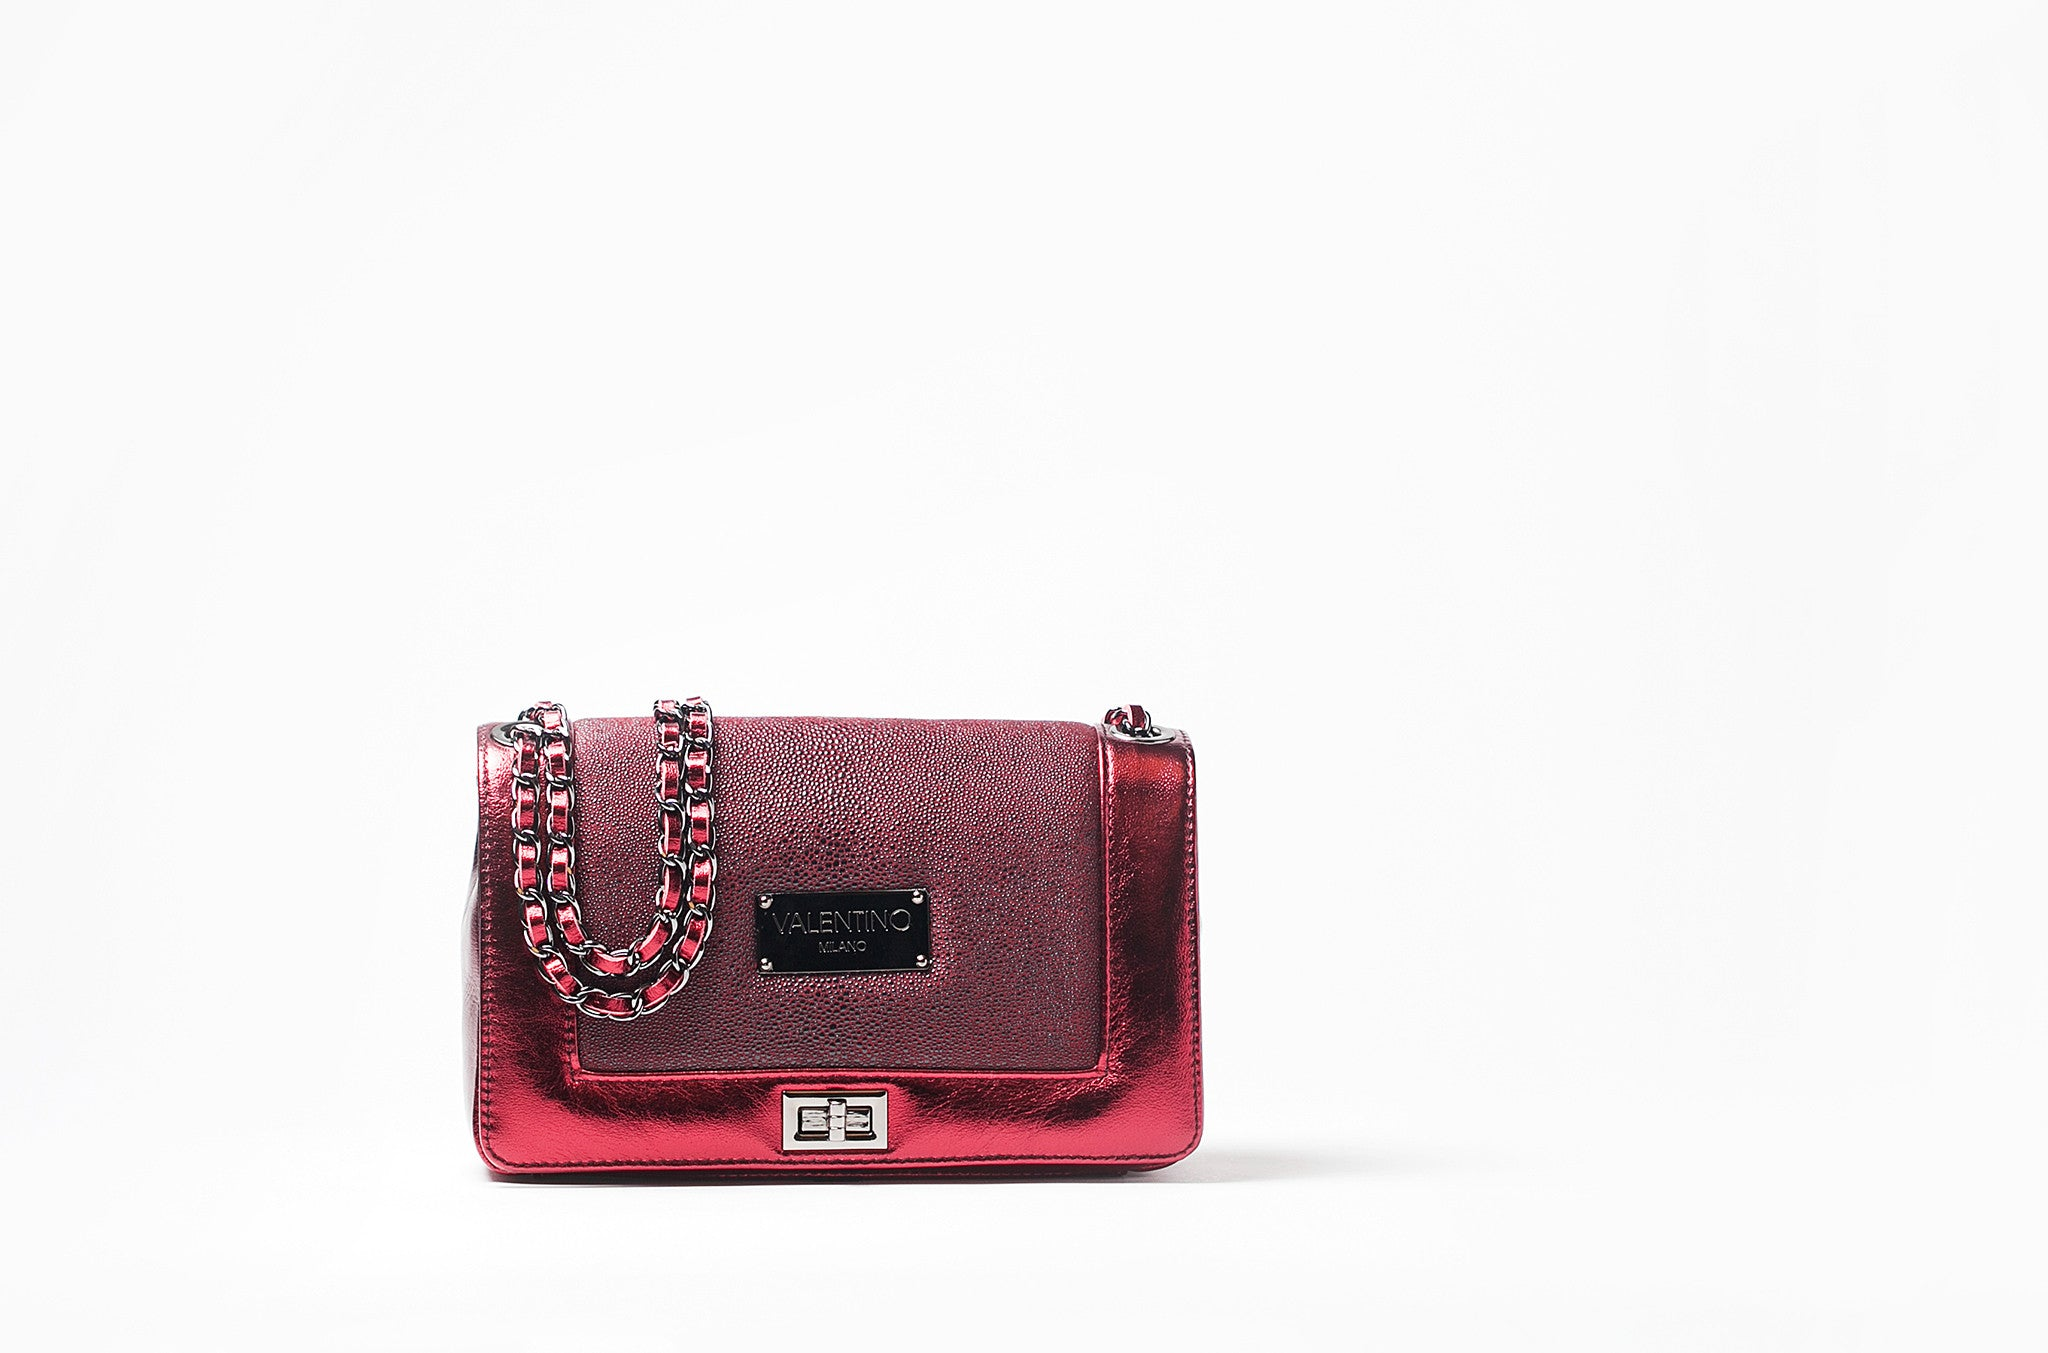 To acquire Holiday Valentino bag picture trends